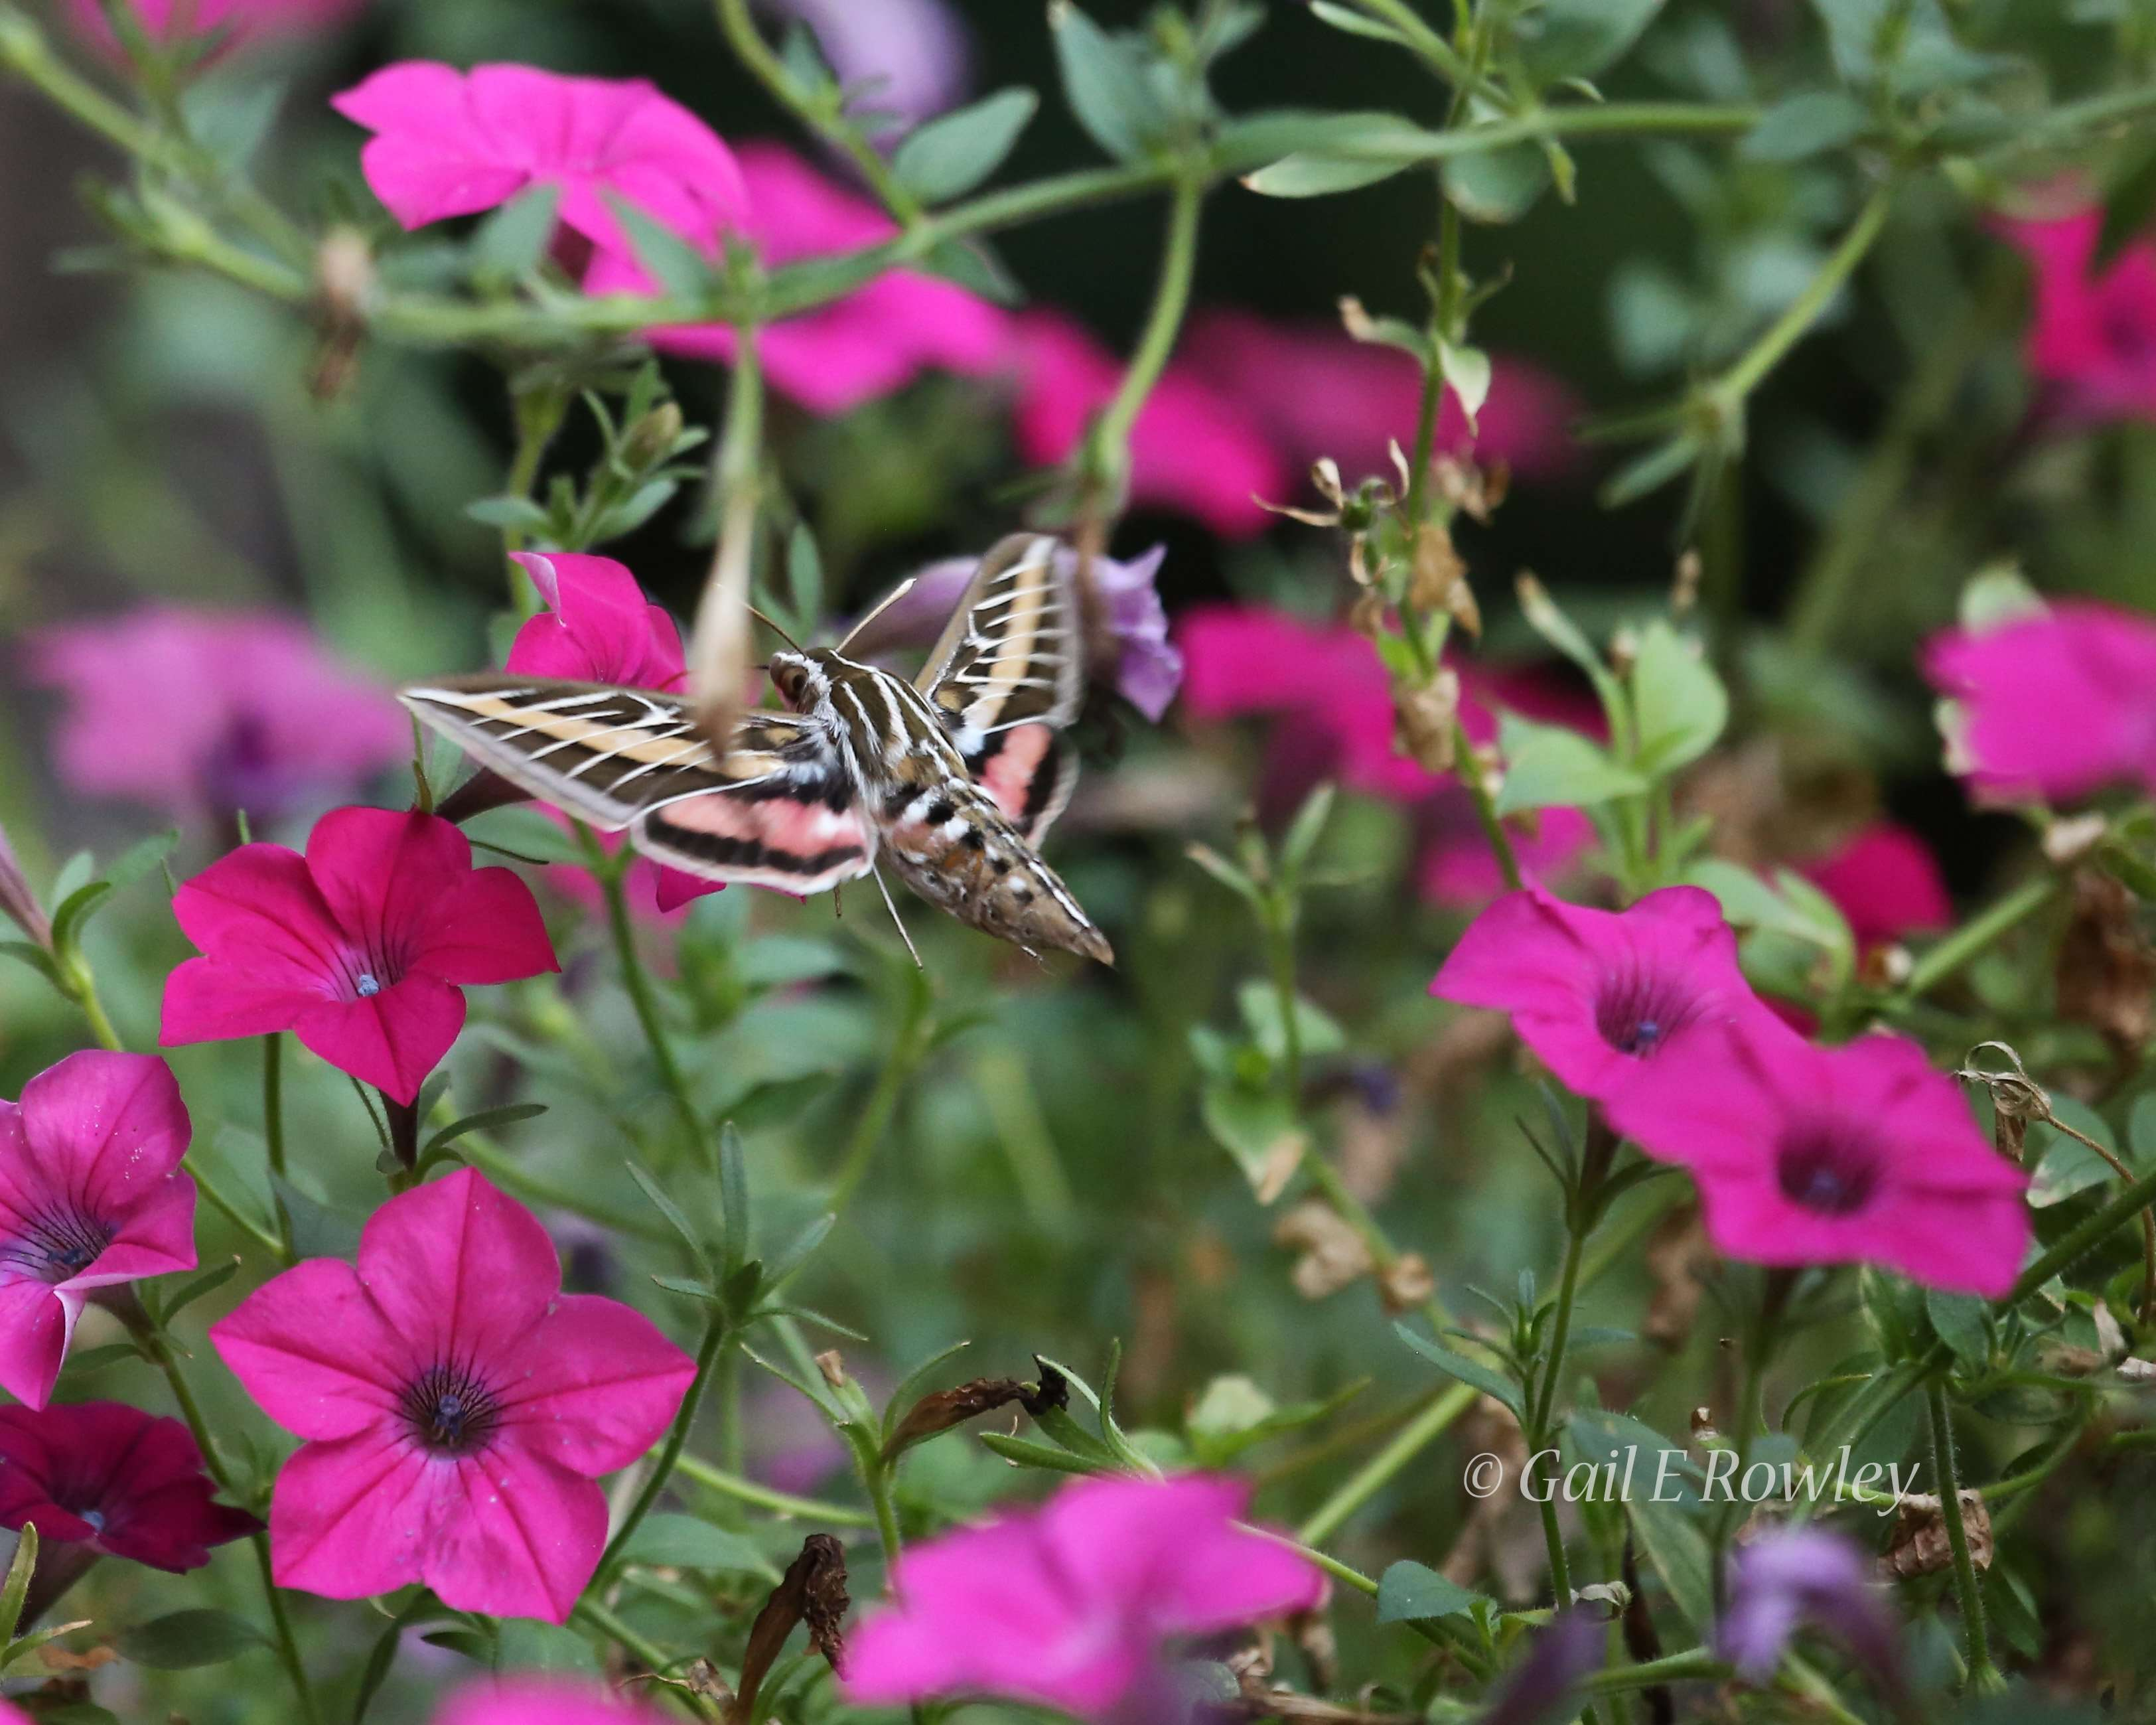 White-lined Sphinx & Petunias photo by Gail E Rowley Ozark Stream Photography